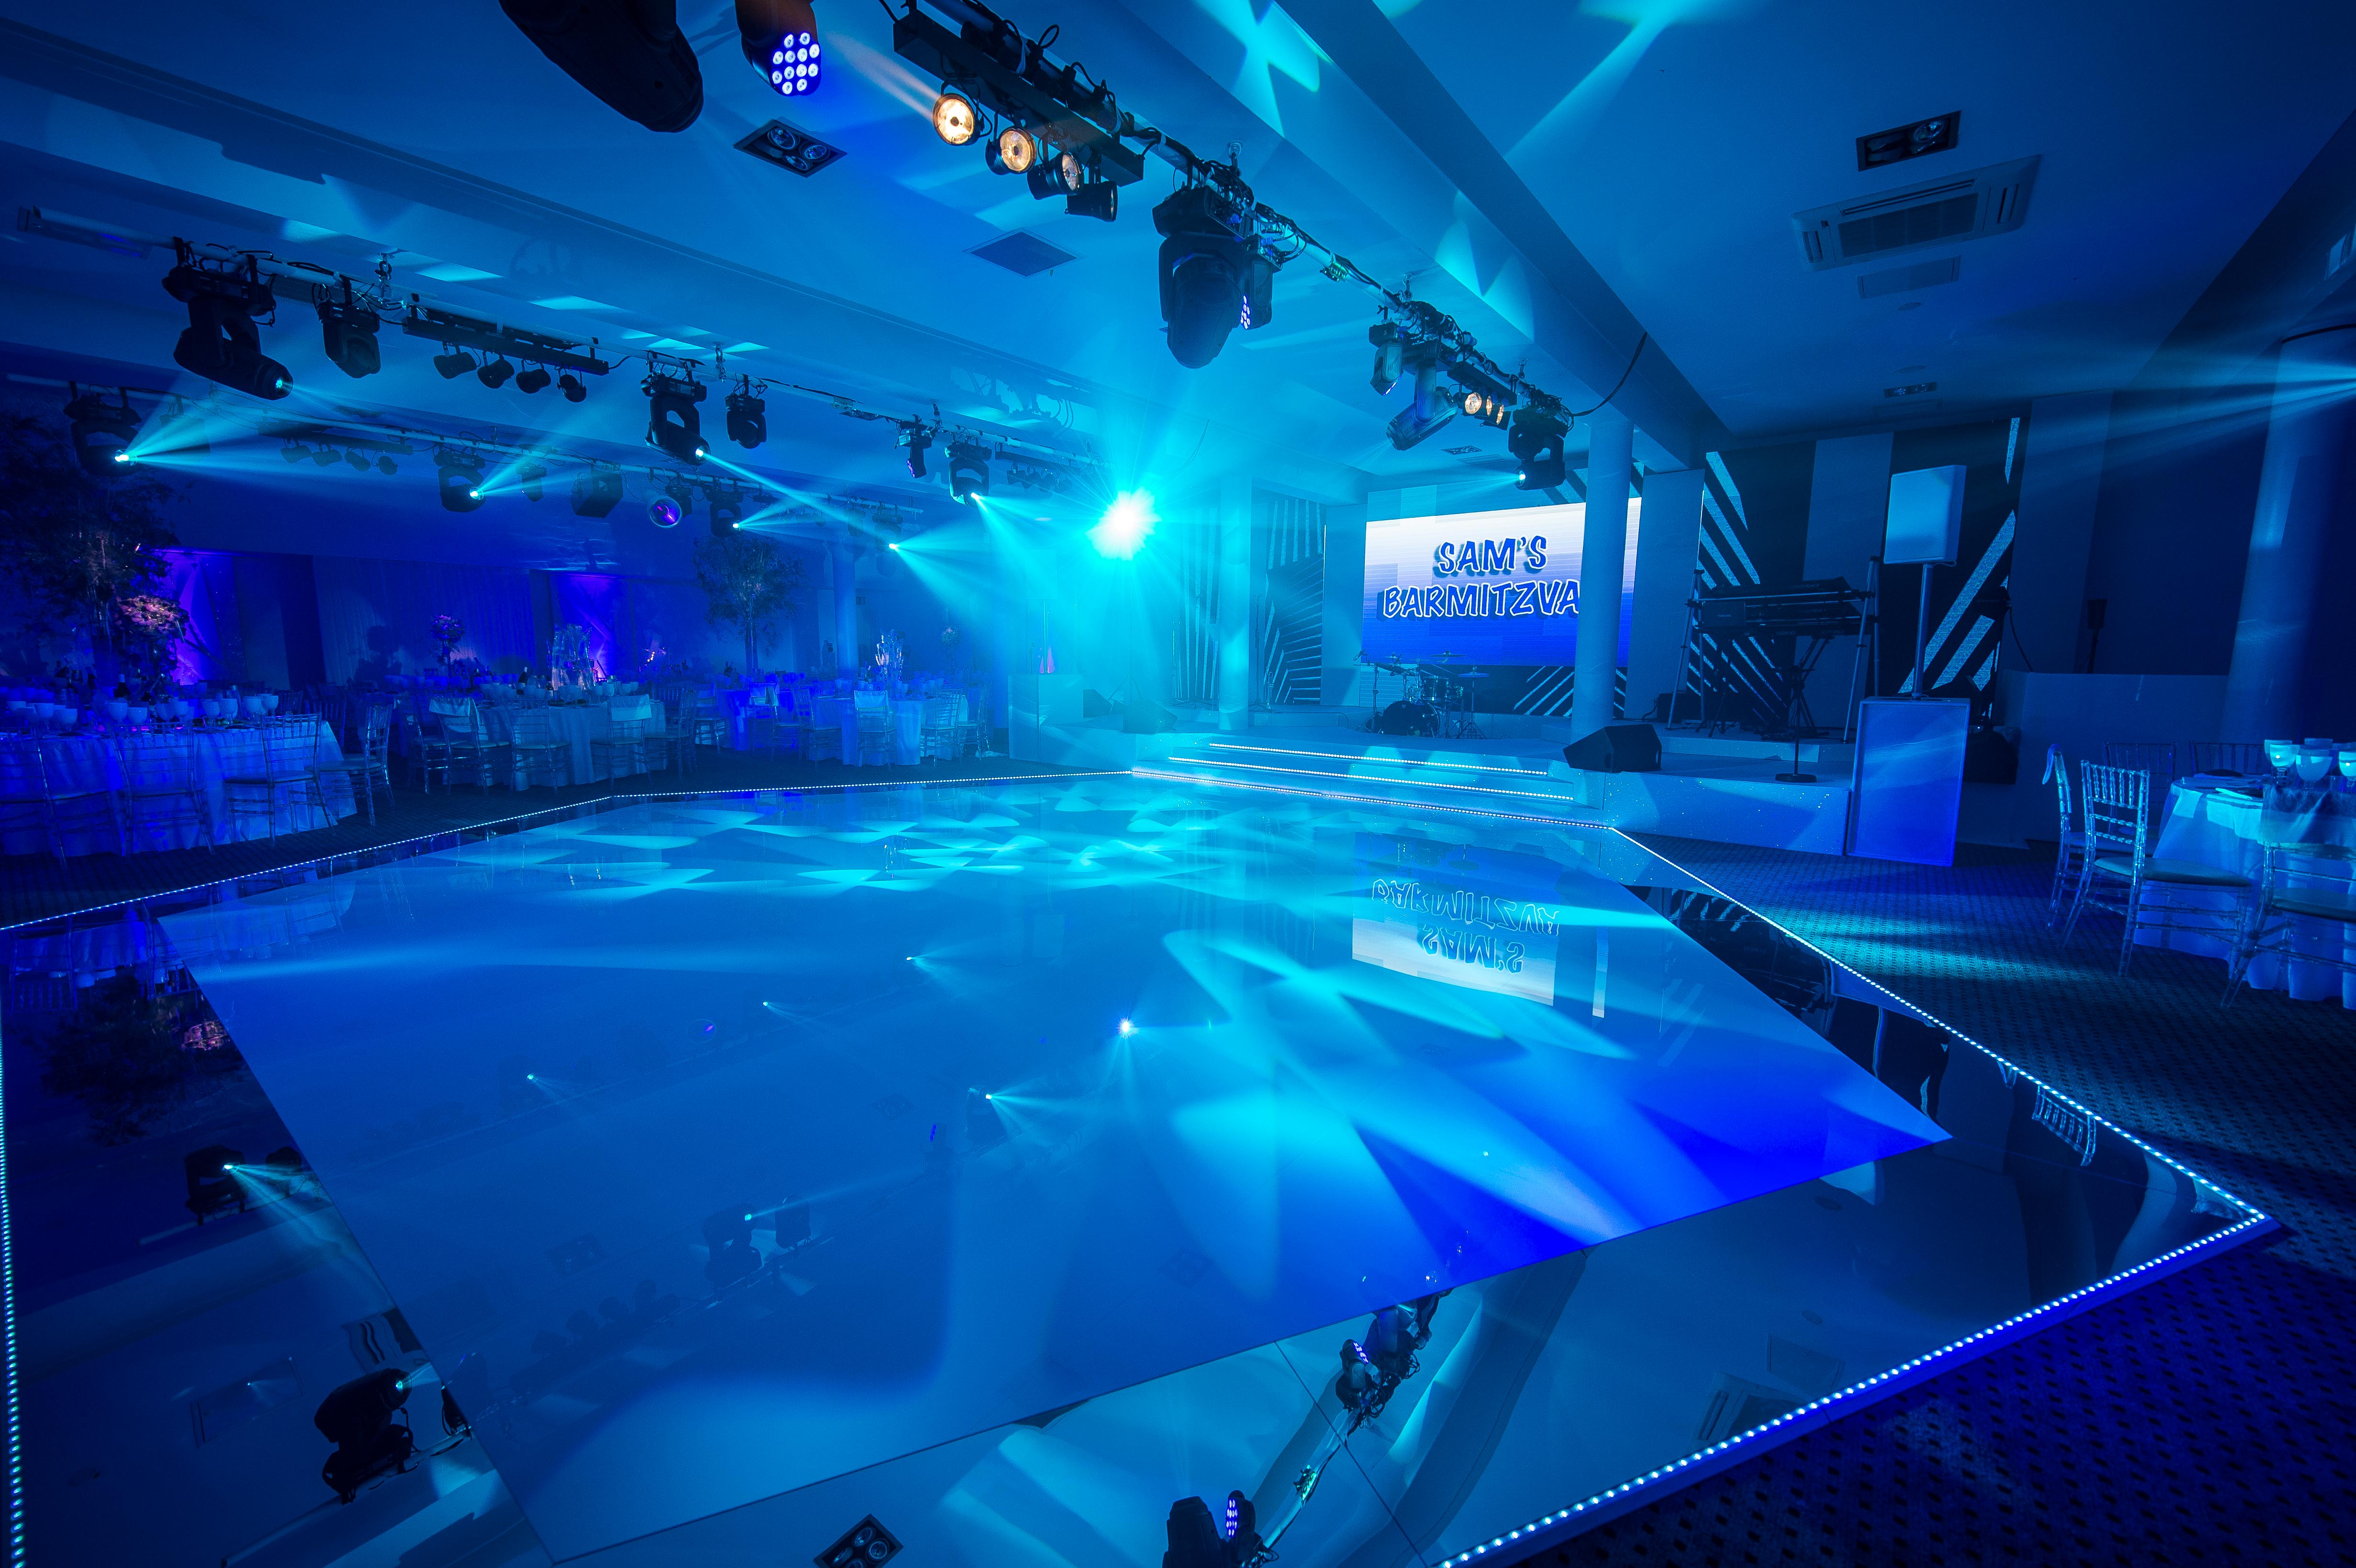 ICE BLUE BARMITZVAH